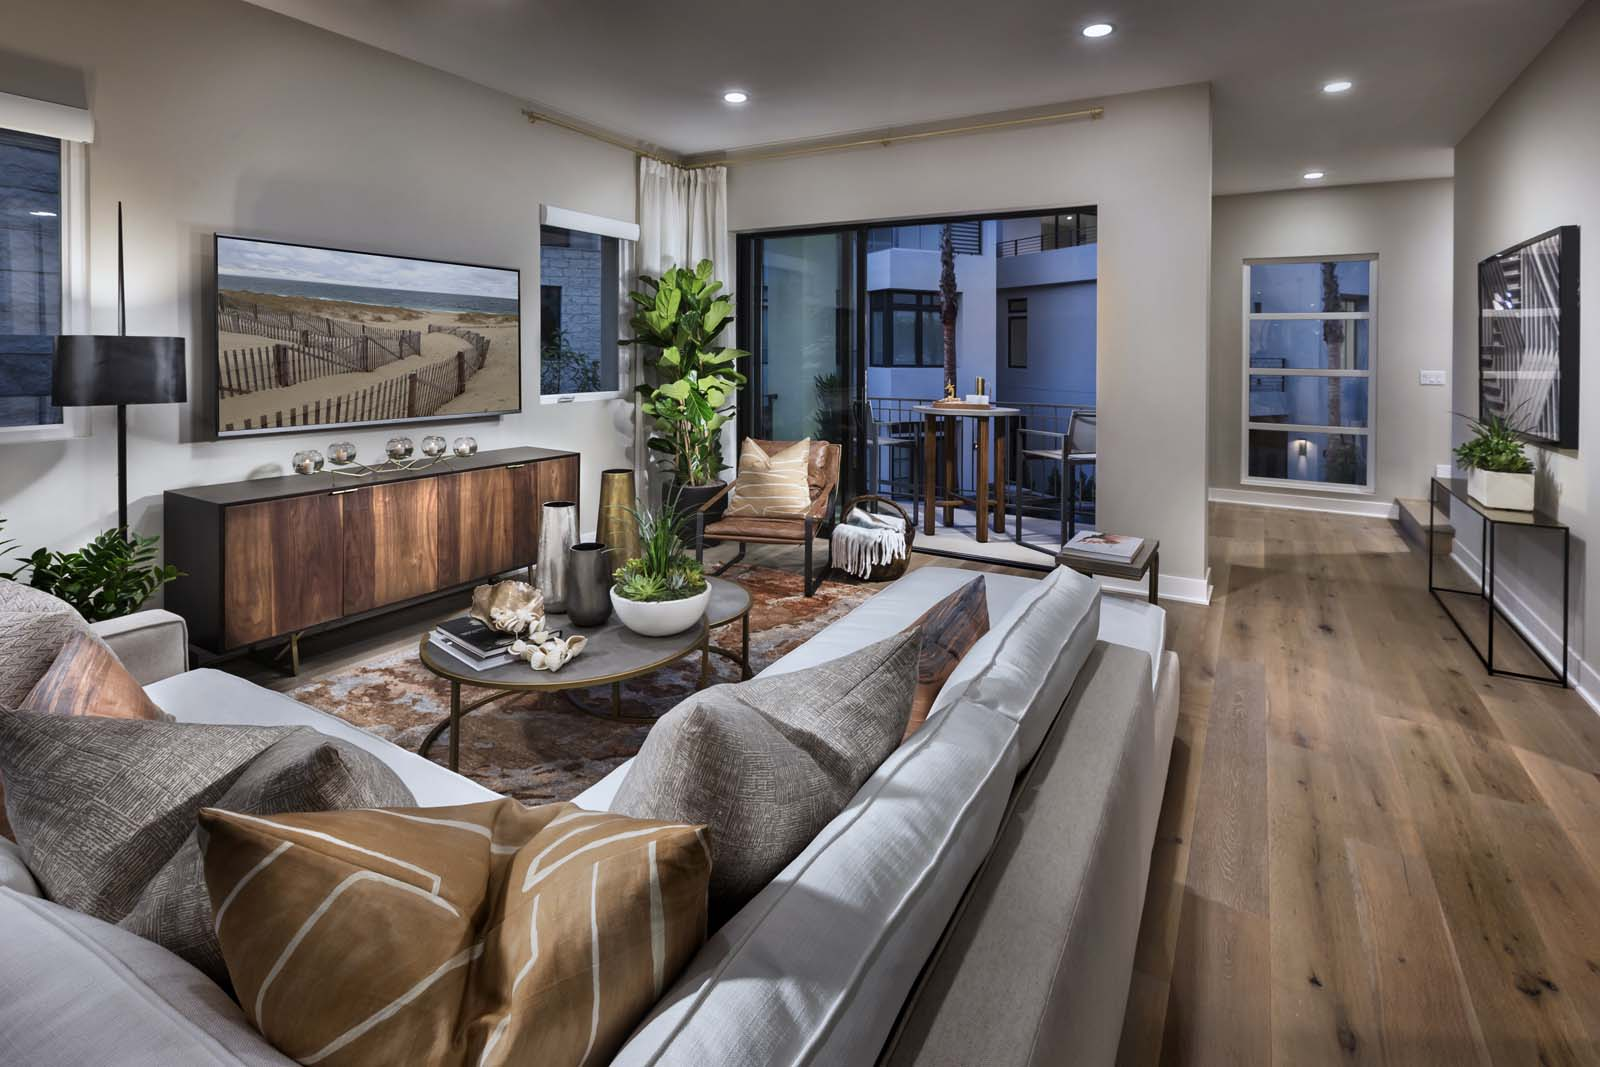 Homes For Sale In Los Angeles | The Collection on seaside house design, second floor house design, joshua tree house design, american foursquare house design,